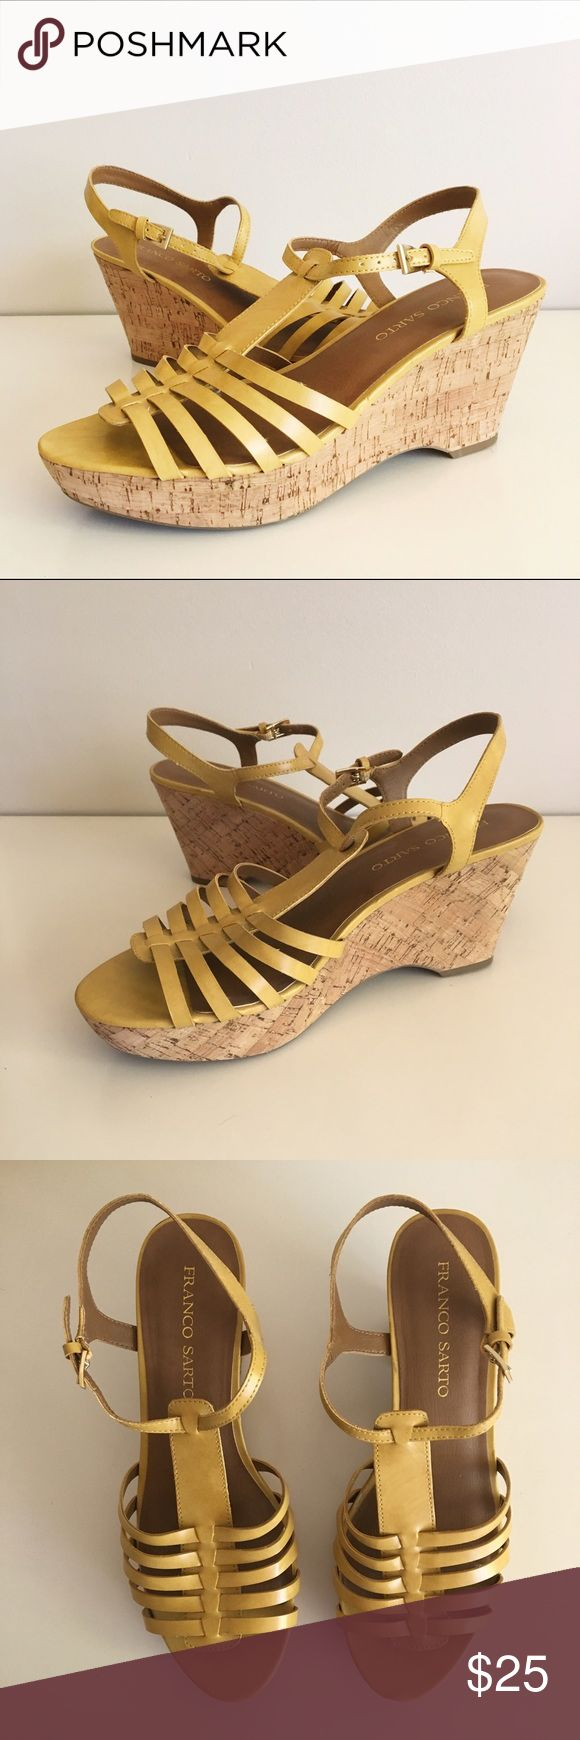 """Franco Sarto Yellow Strappy Wedges Size 10 CUTE Franco Sarto Yellow Strappy Wedges. Size 10. These are perfect for spring and summer. Cork heel. Great Used Condition. Heel: 3 1/2"""". Platform: 1 1/2"""" Franco Sarto Shoes Wedges"""